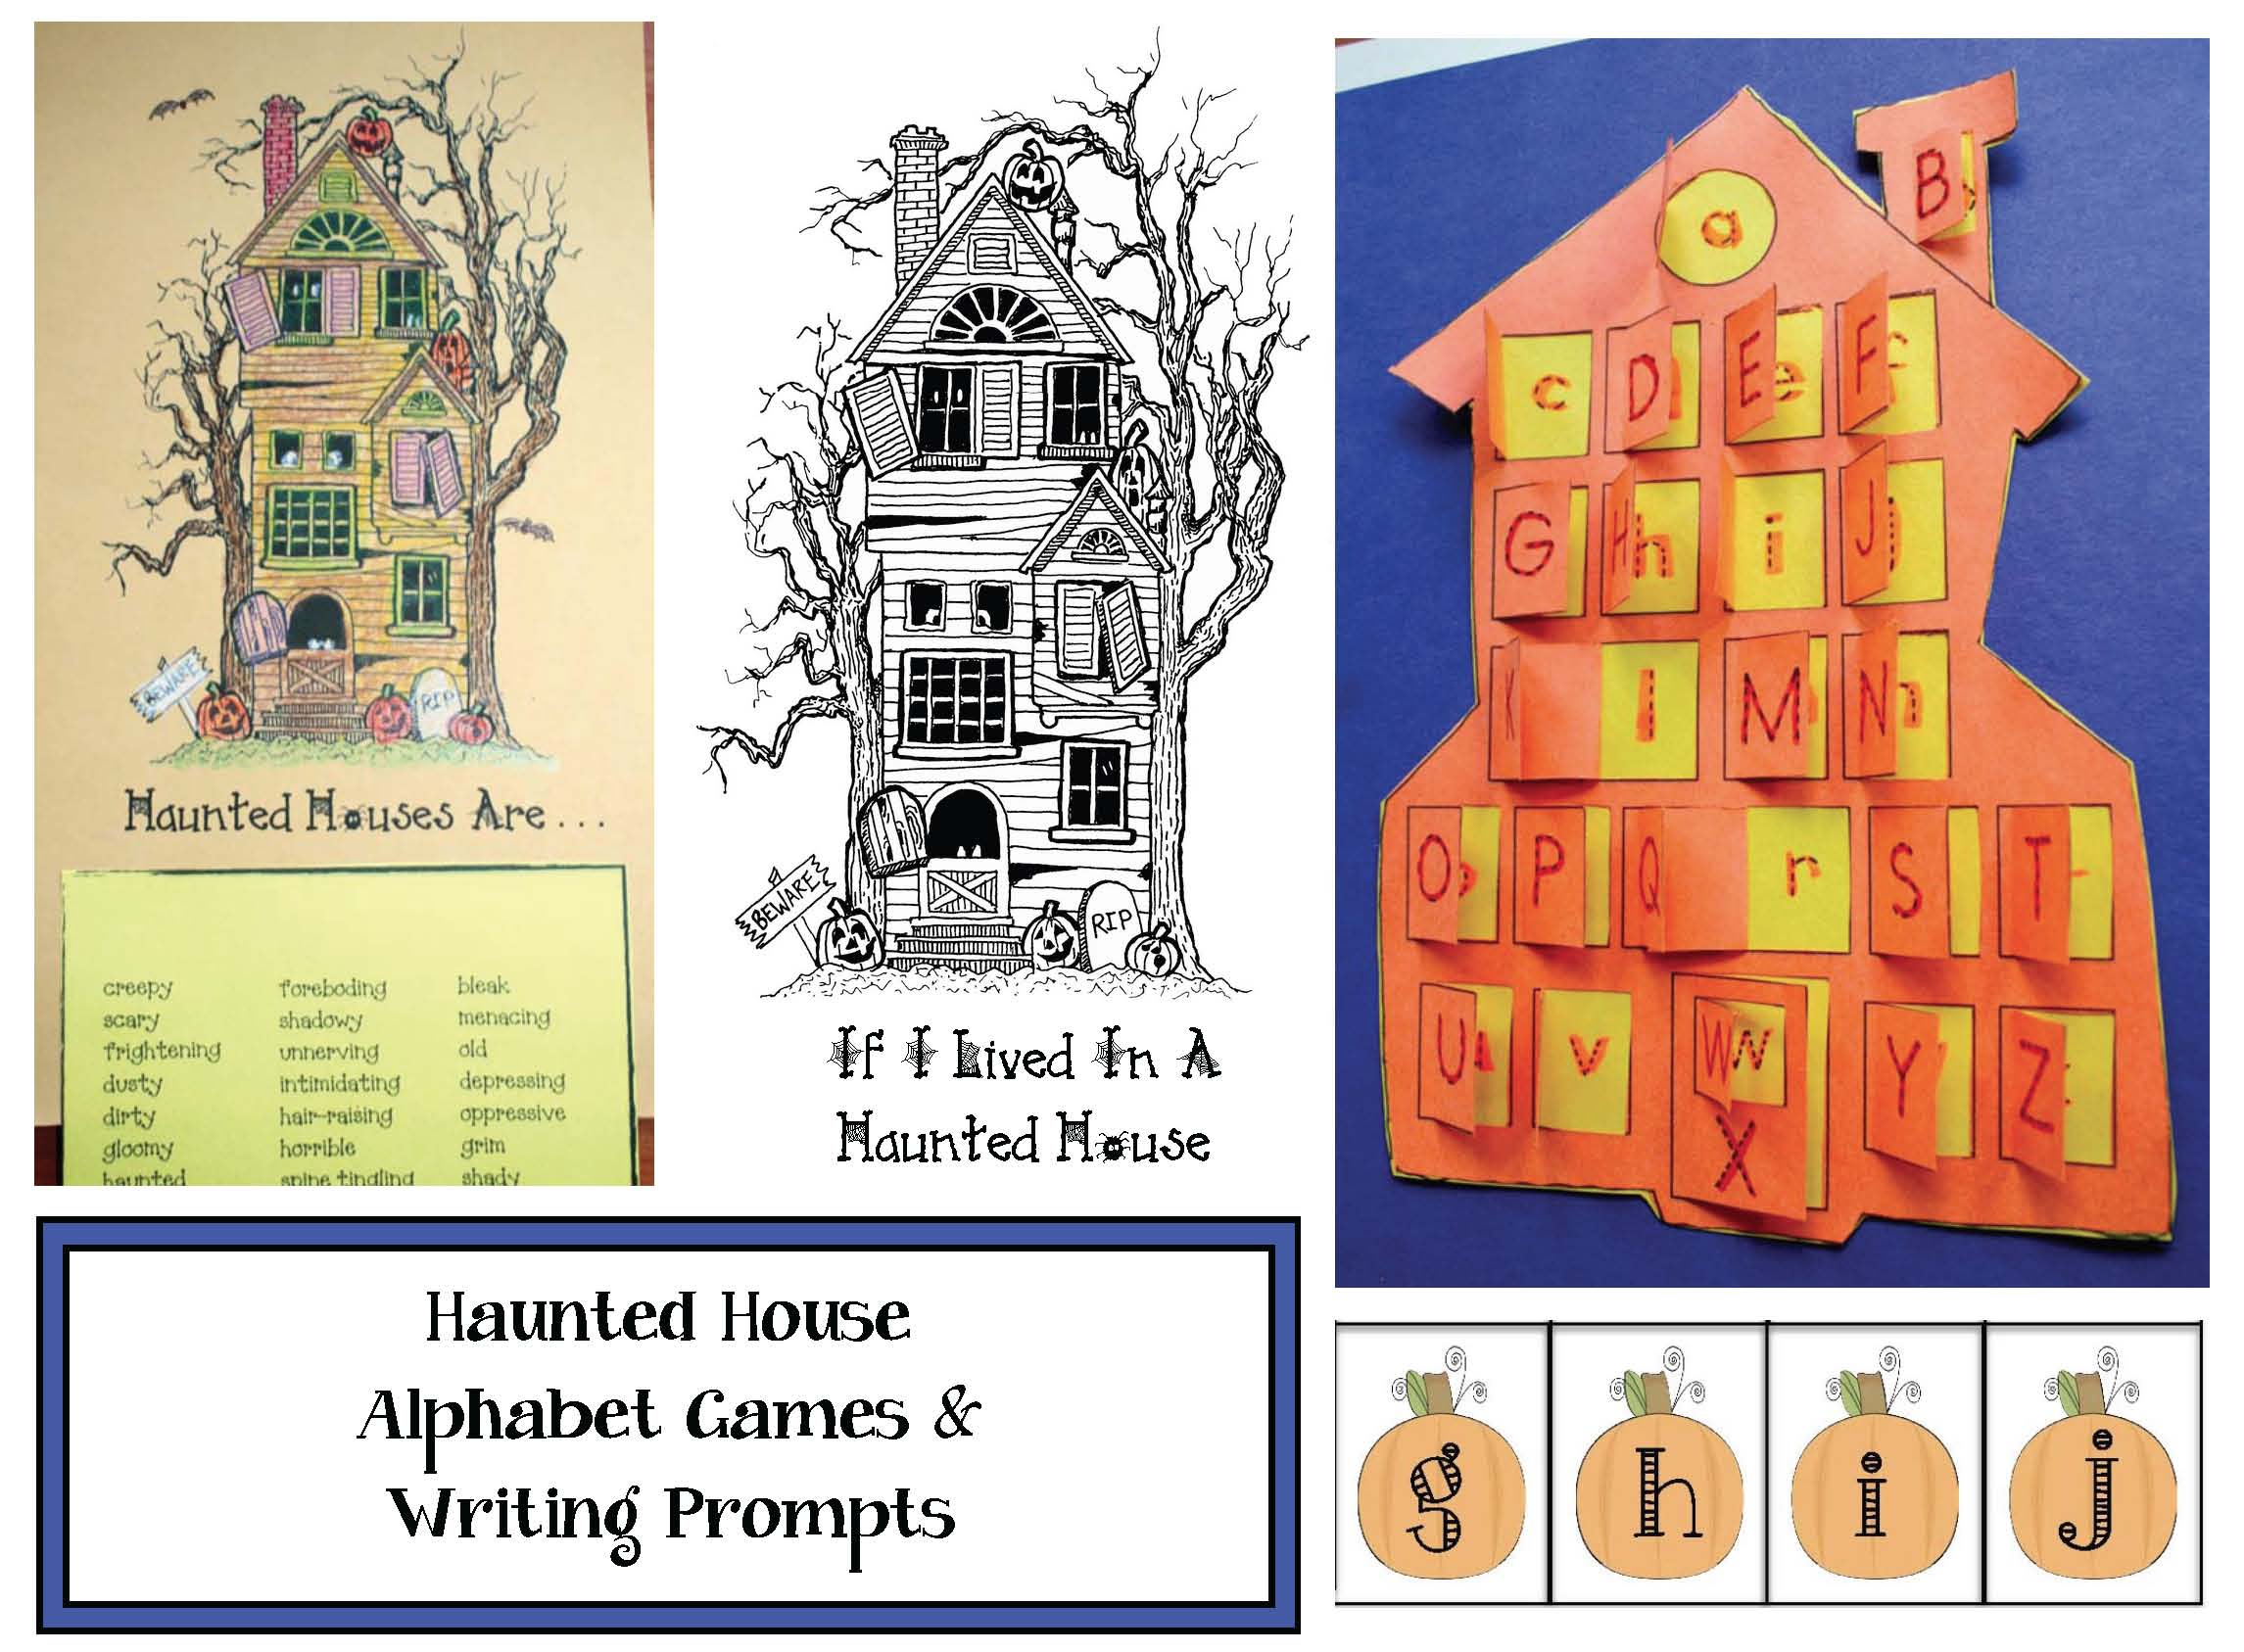 haunted house activities, haunted house writing prompts, words that describe a haunted house, alphabet games, haunted house games, Halloween games, Daily 5 for October, adjective activities, haunted house writing prompts, writing prompts for october